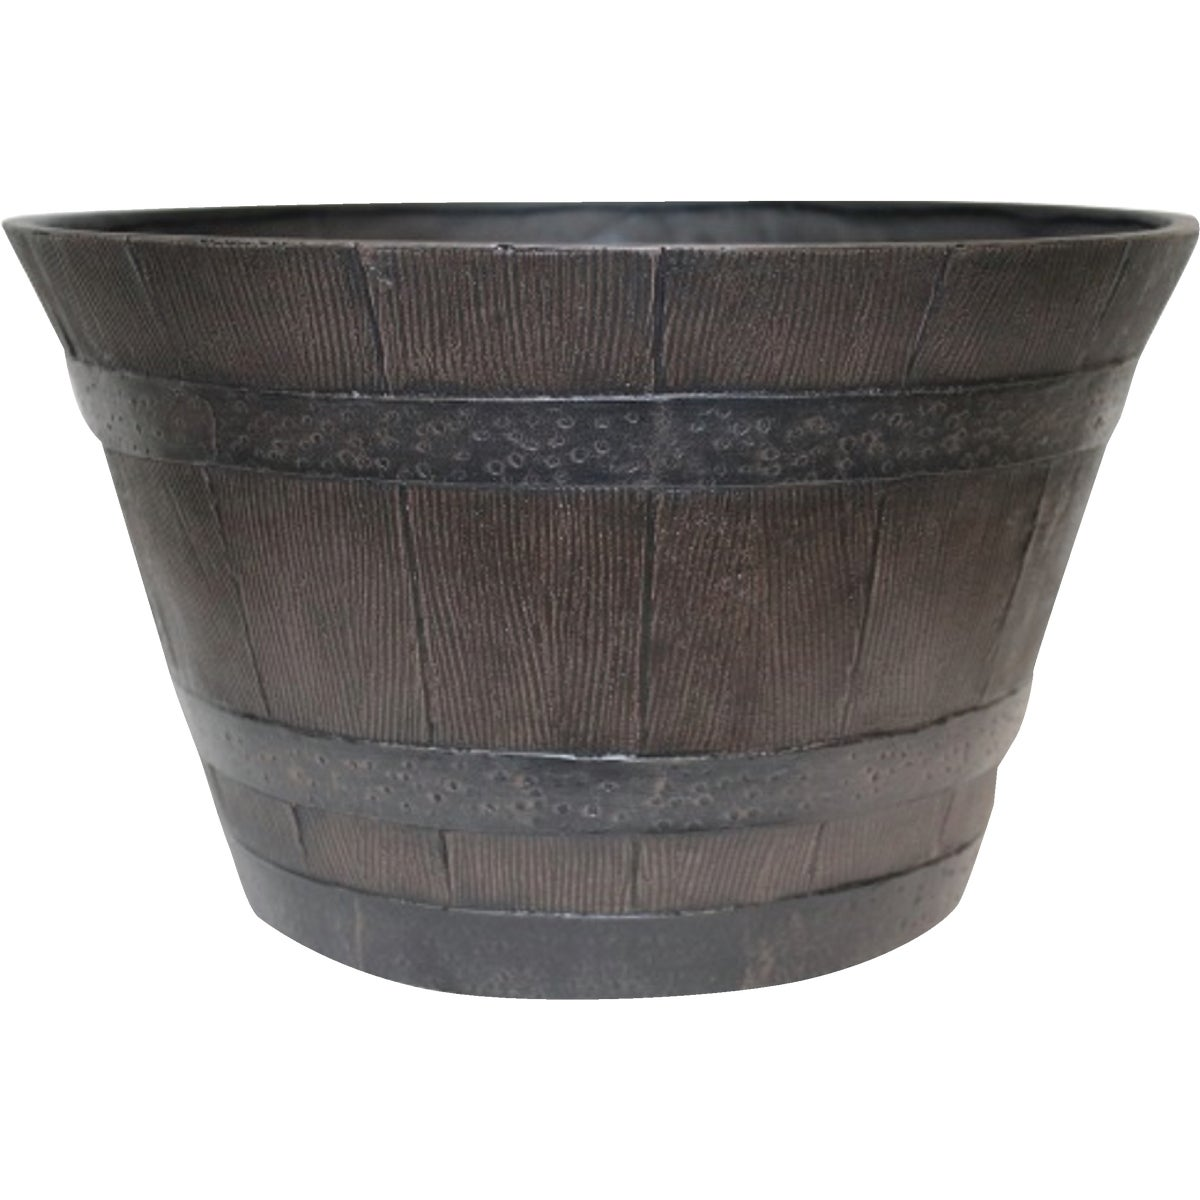 "22"" WHISKEY BARREL PLNTR - HDR-002550 by Southern Patio"